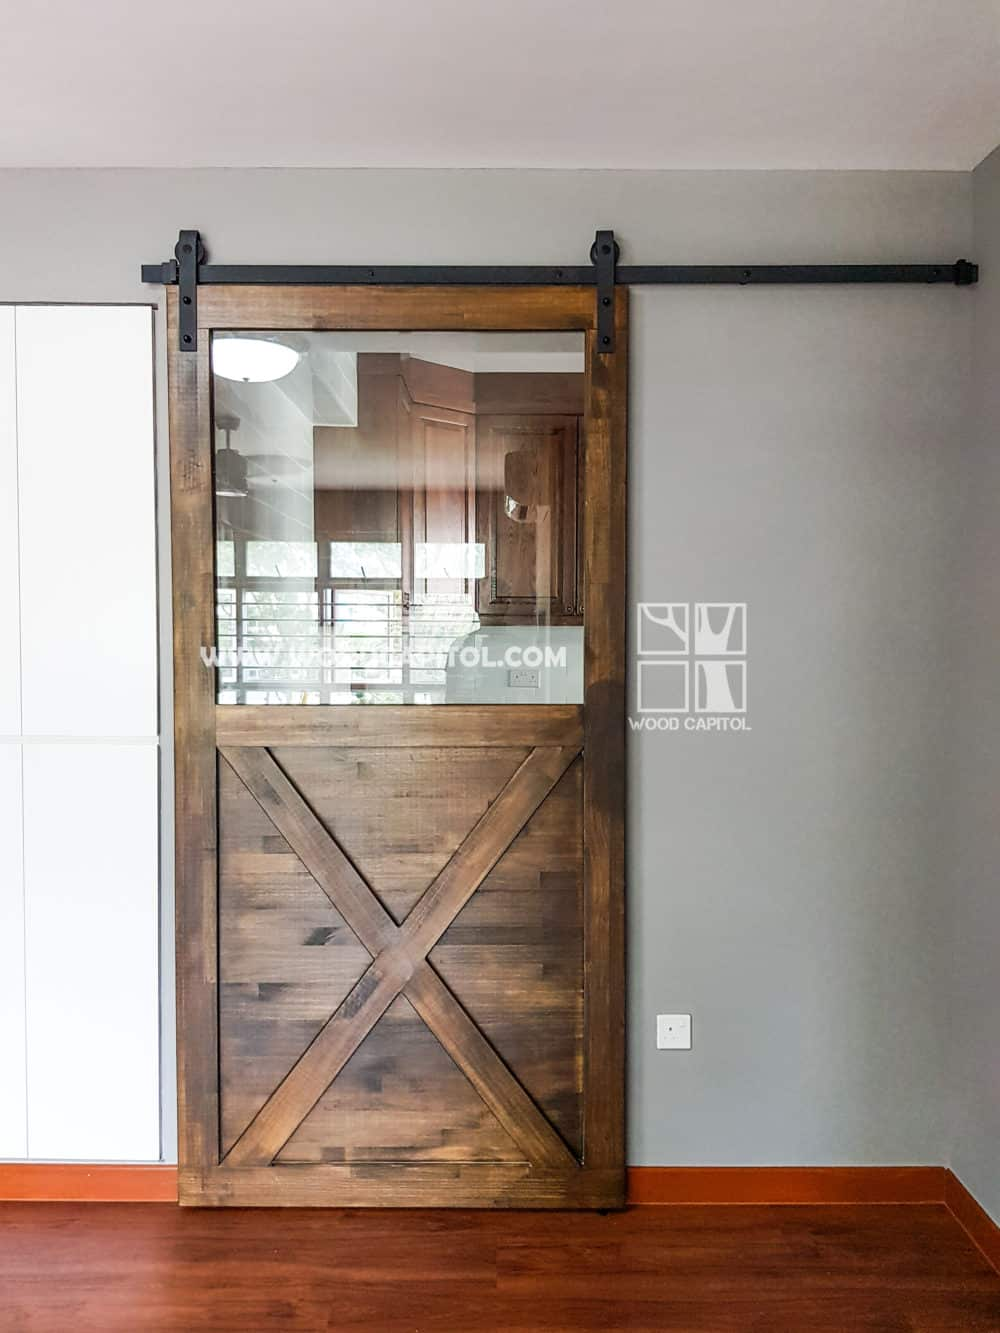 Wood Capitol Glass Barn Door